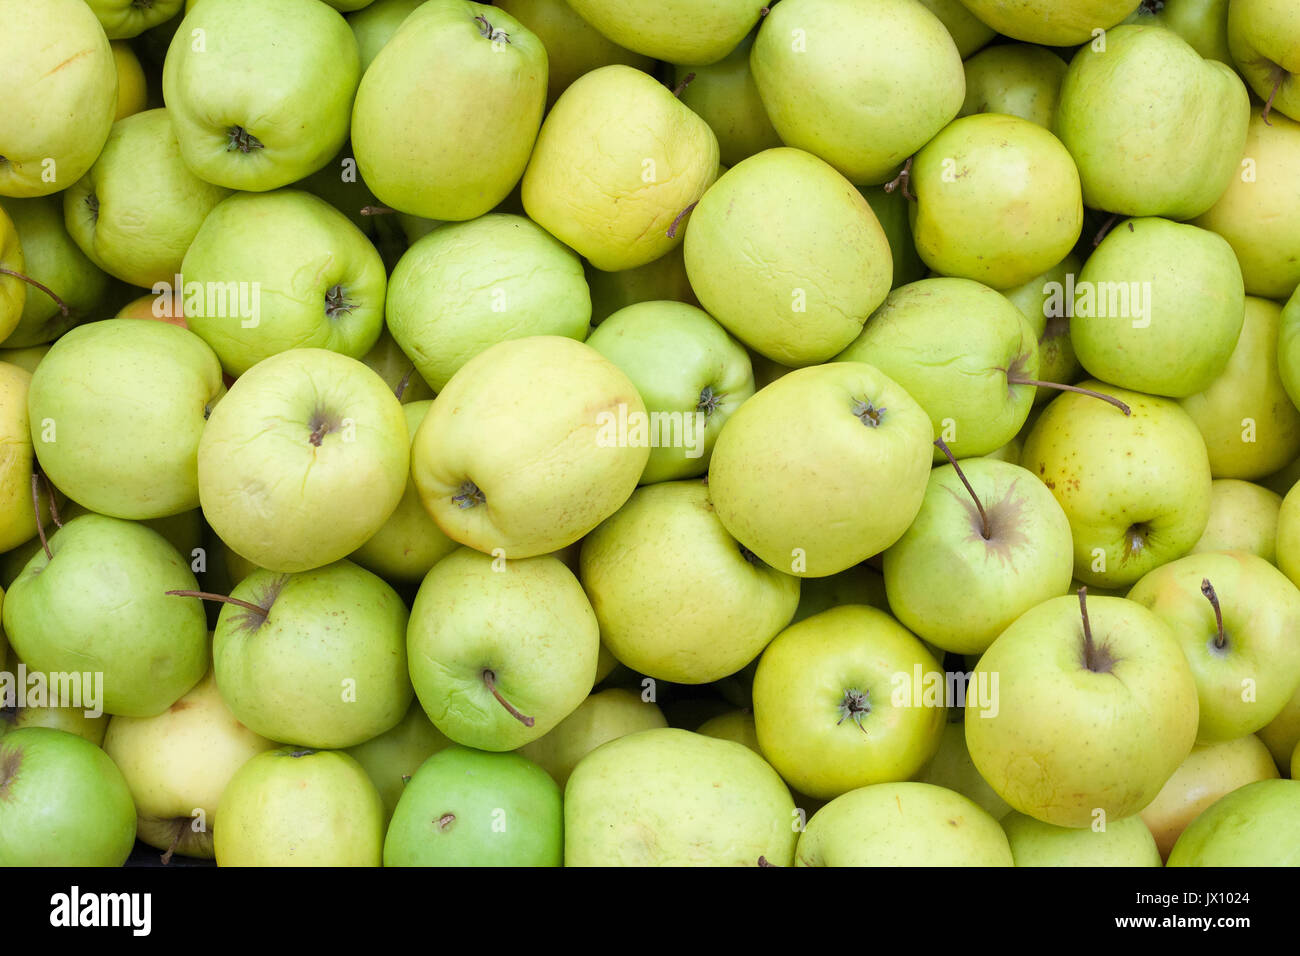 Apples background Green apple Raw fruit and vegetable backgrounds overhead perspective - Stock Image